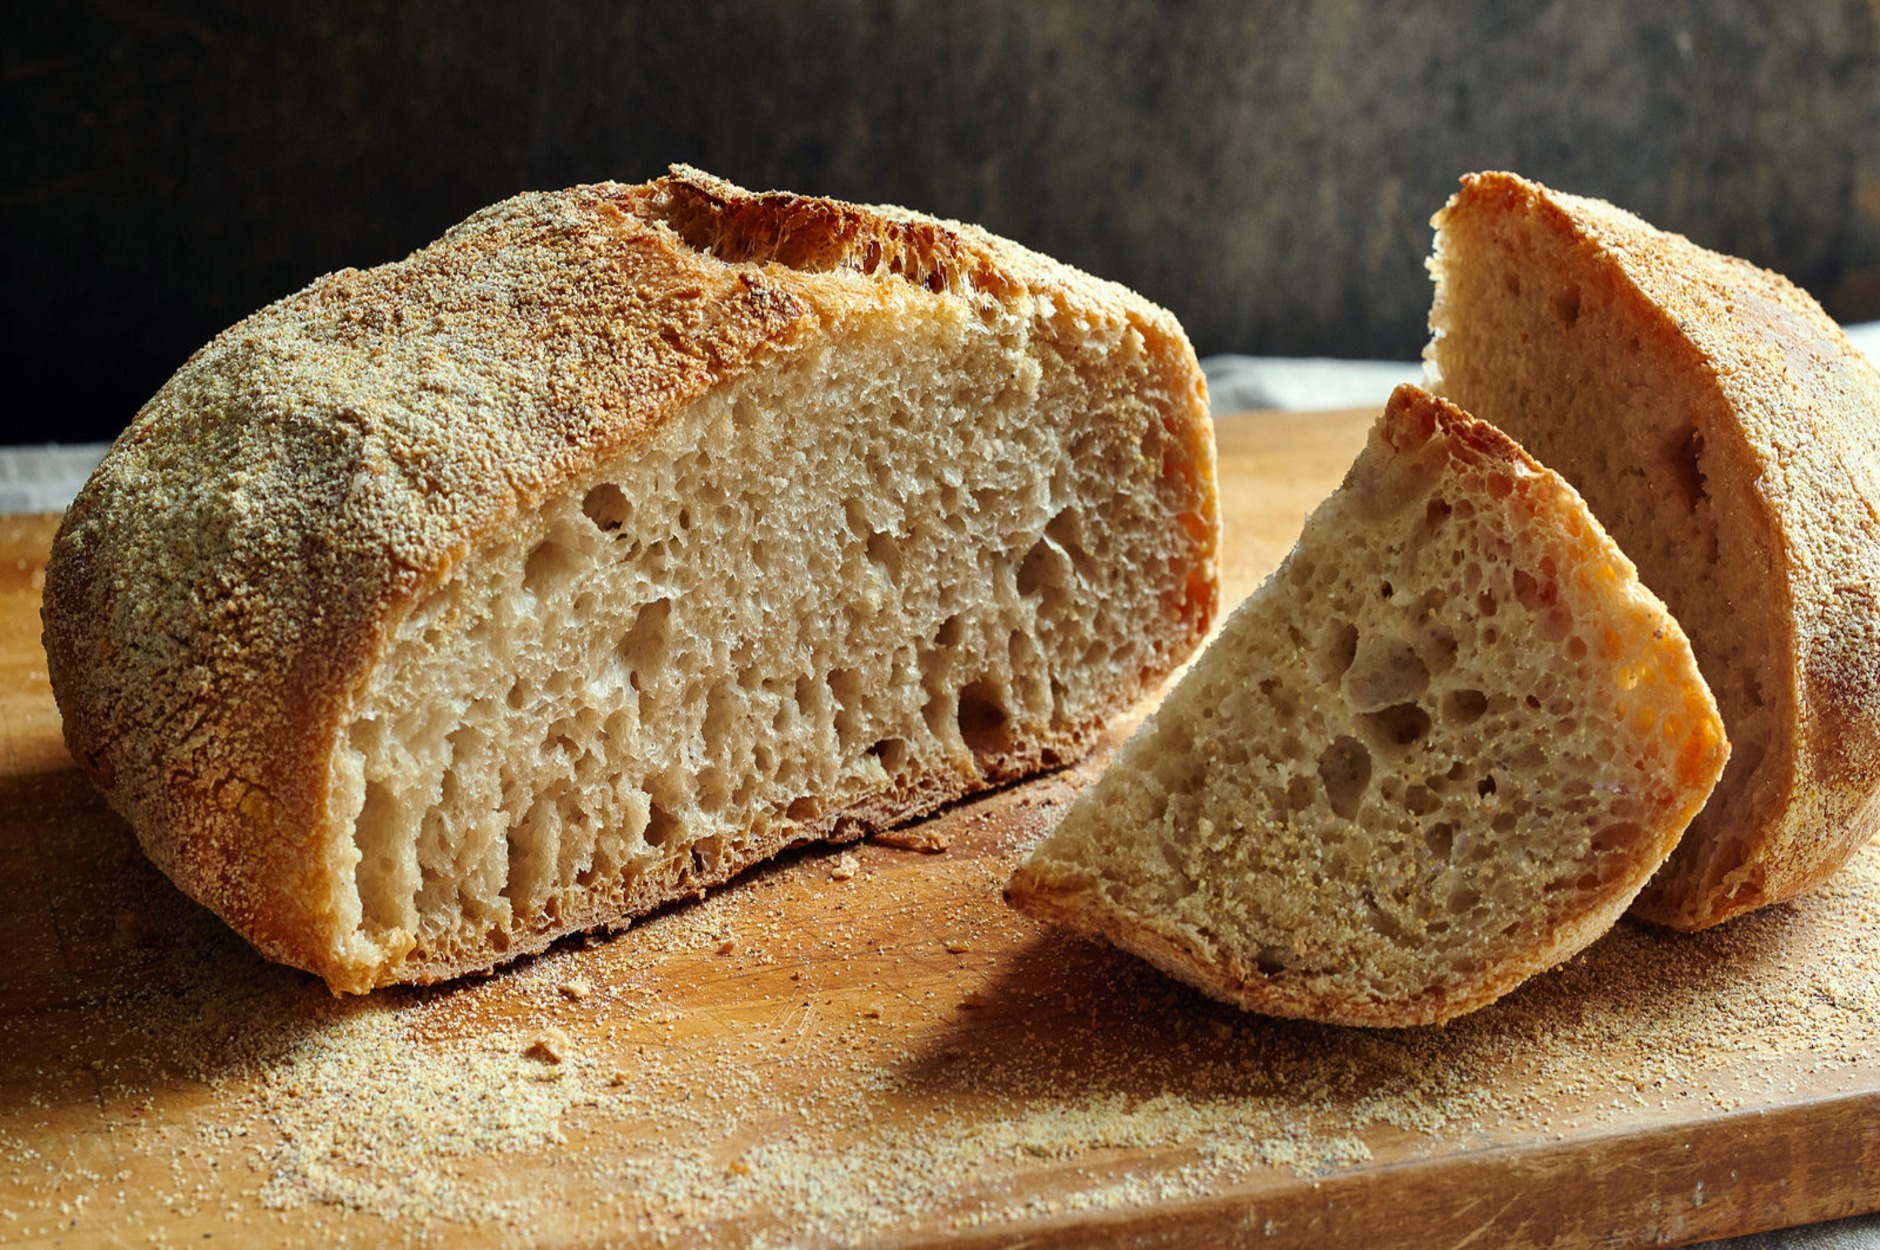 bread made with untreated flour